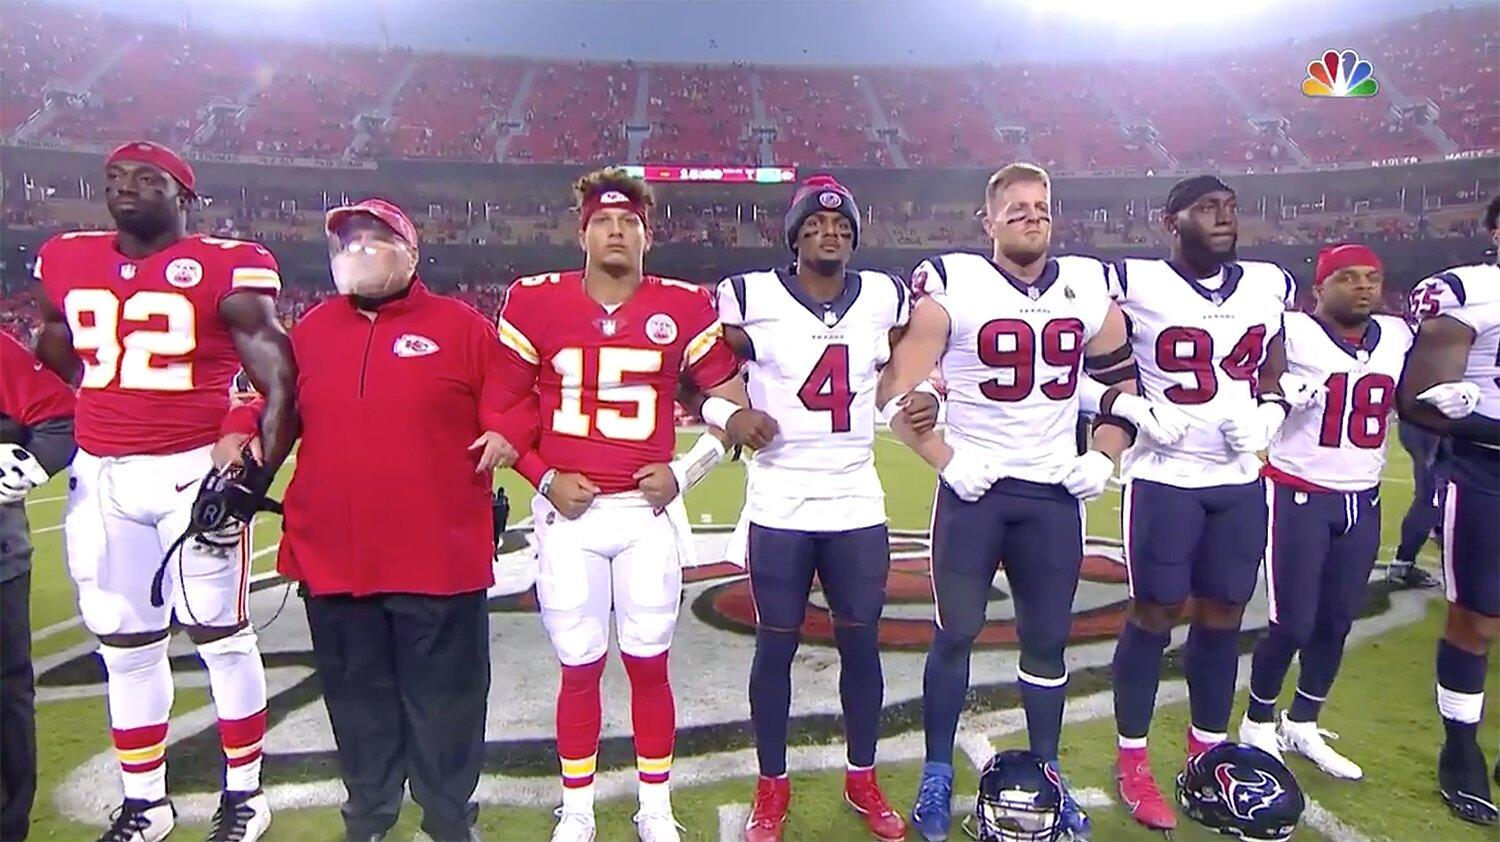 Kansas City Chiefs and Houston Texans Lock Arms in 'Moment of Unity' on  Opening Night